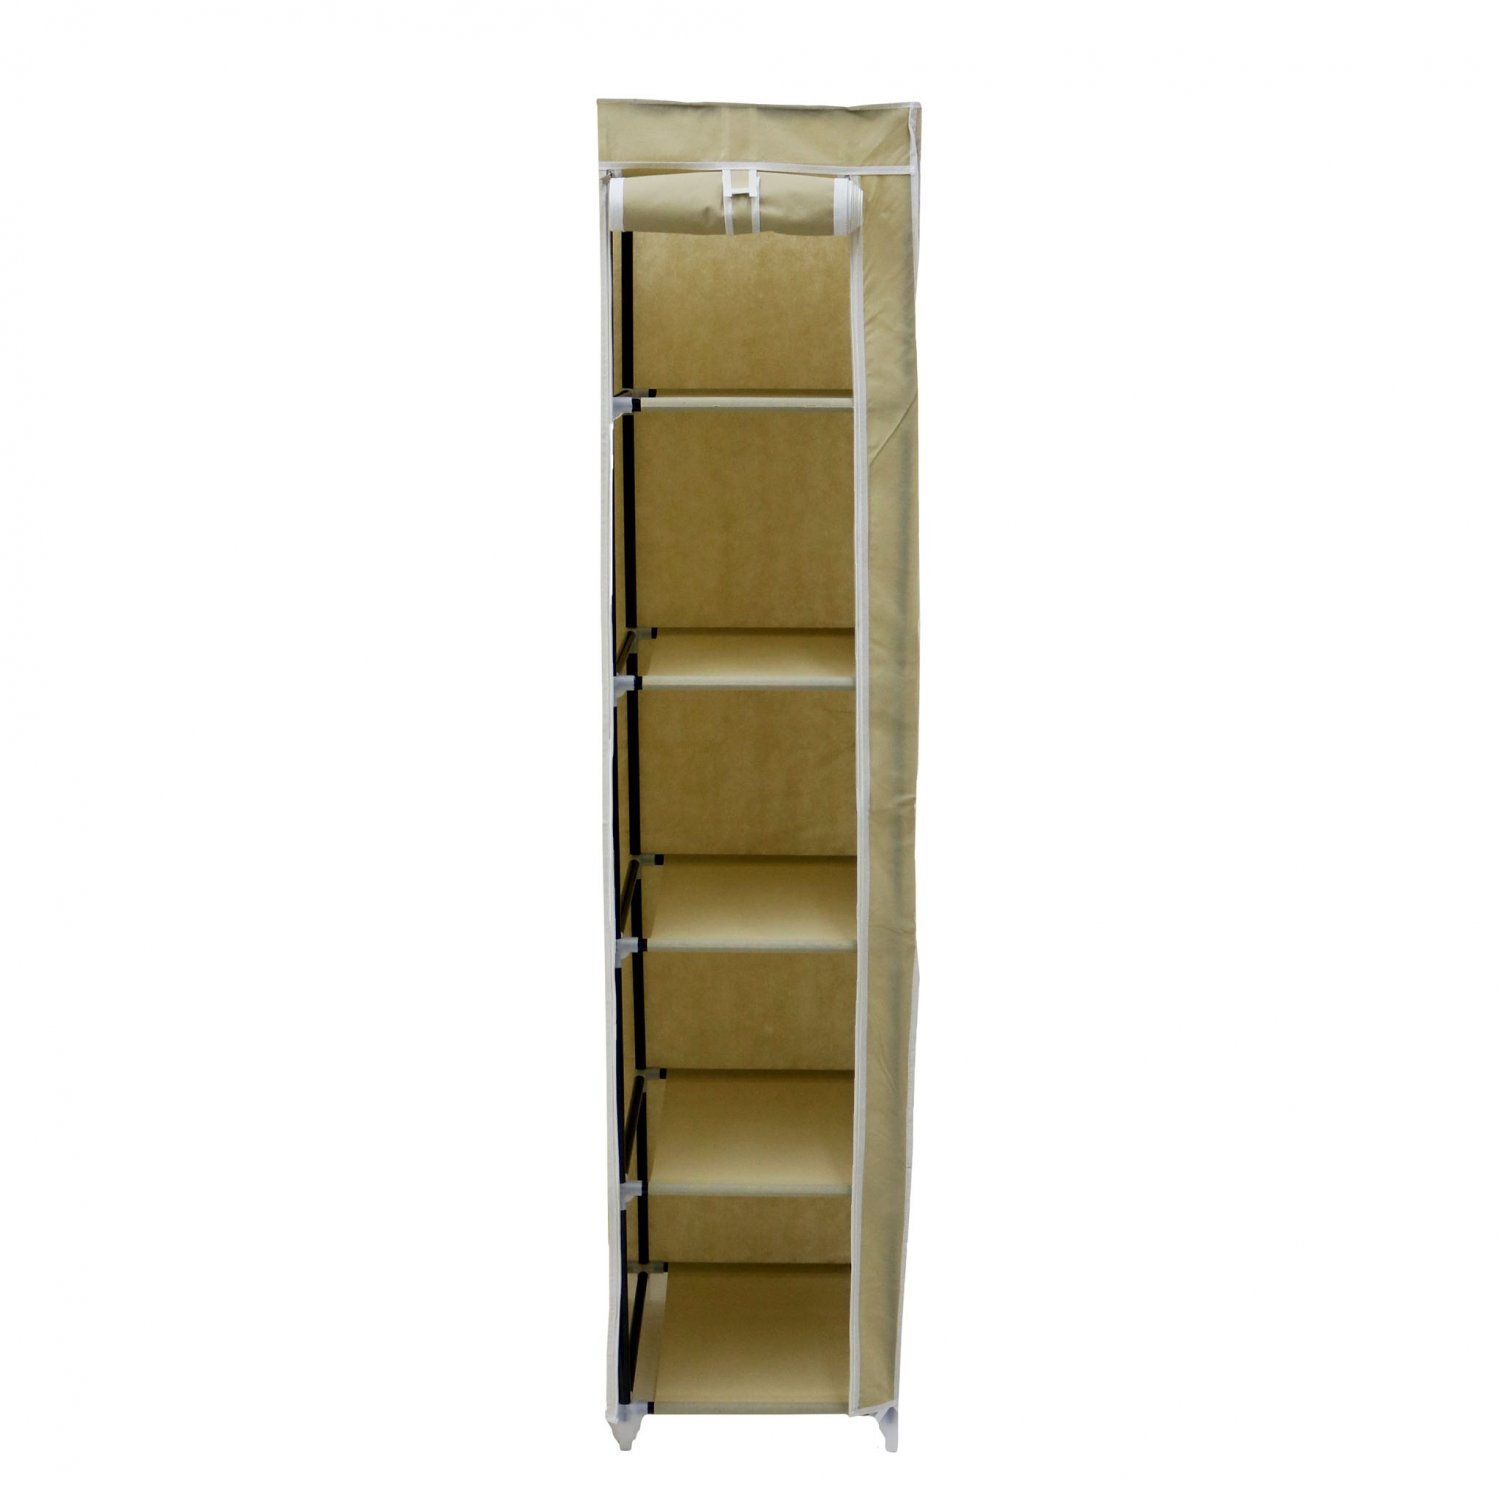 Double Hanging Wardrobe Double Cream Canvas Wardrobe Clothes Rail Hanging Storage